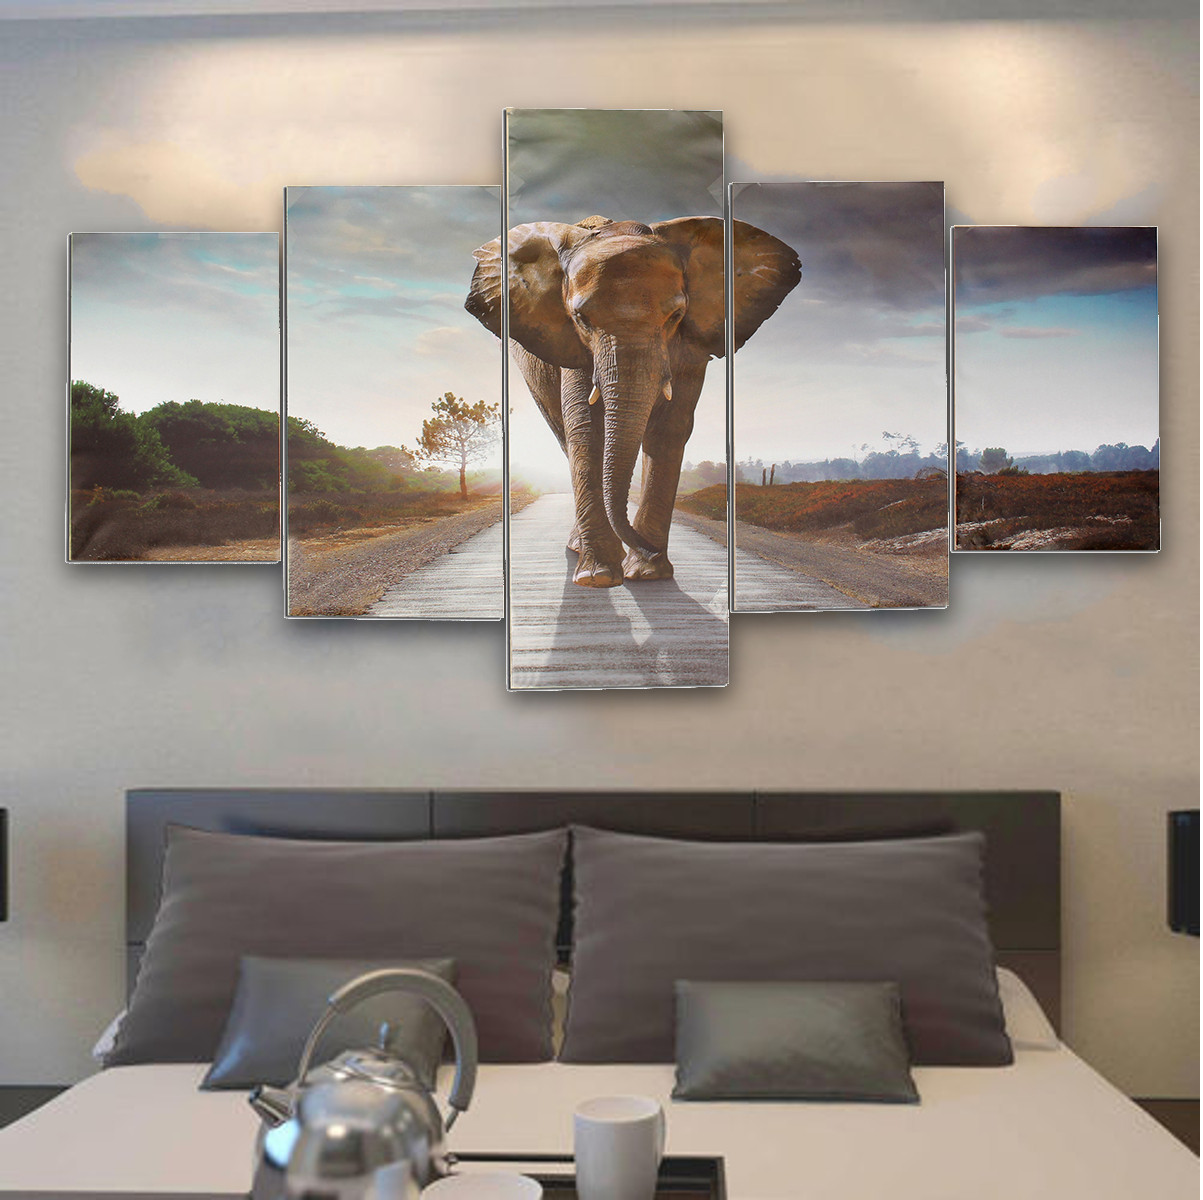 Details About 5 Panel Unframed Elephant Canvas Prints Home Decor Wall Art Canvas Painting